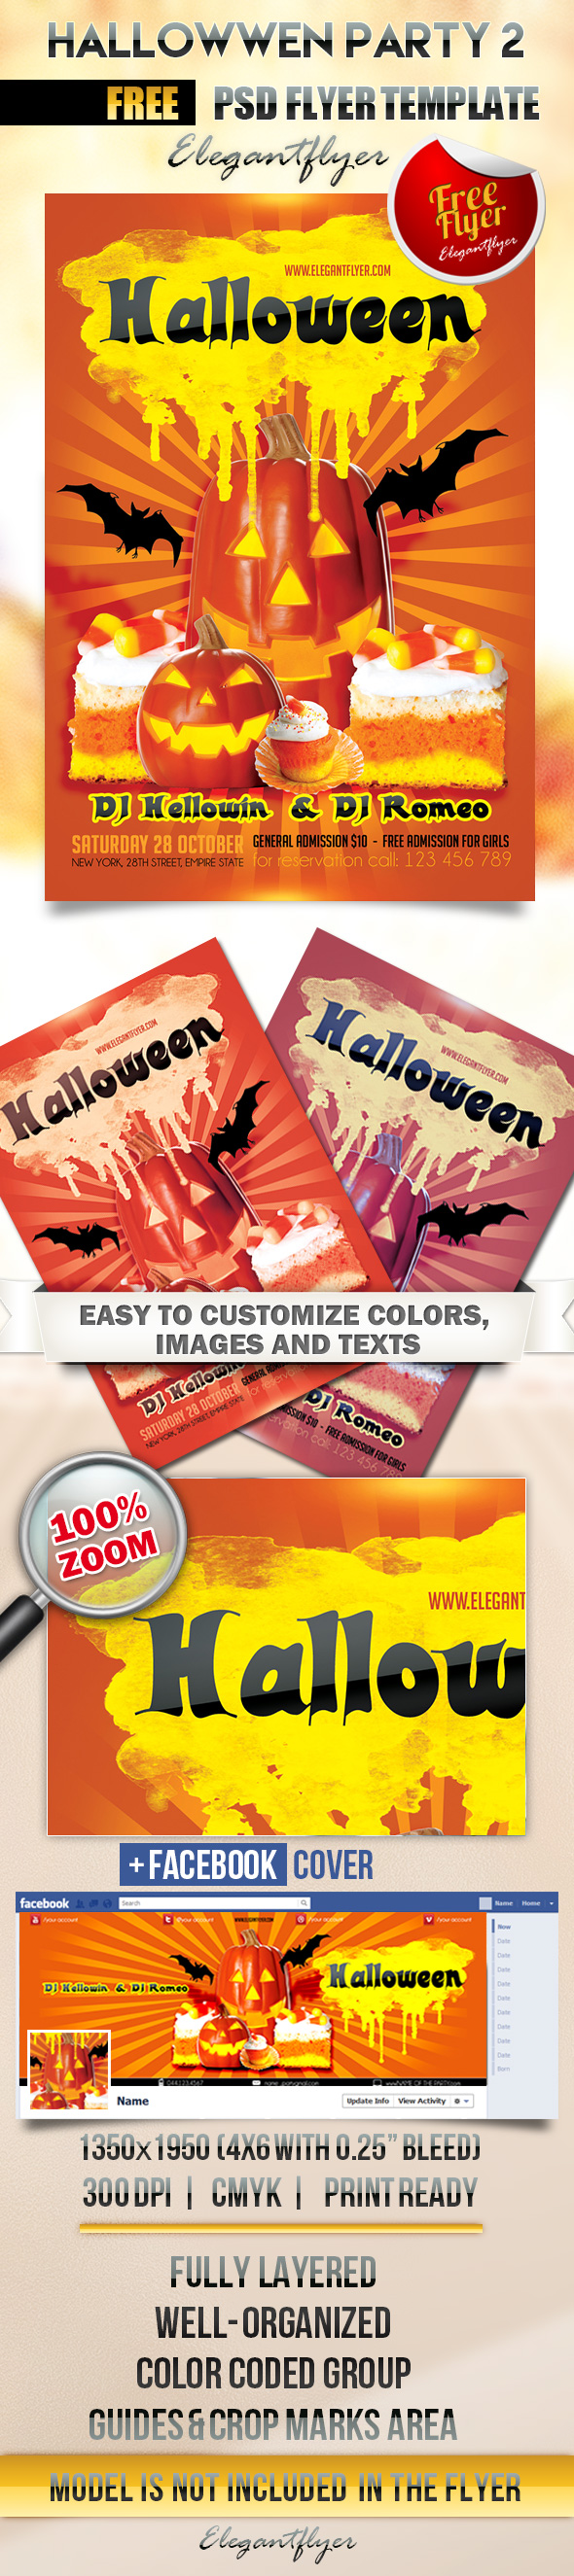 20 free psd halloween flyer templates free psd templates. Black Bedroom Furniture Sets. Home Design Ideas